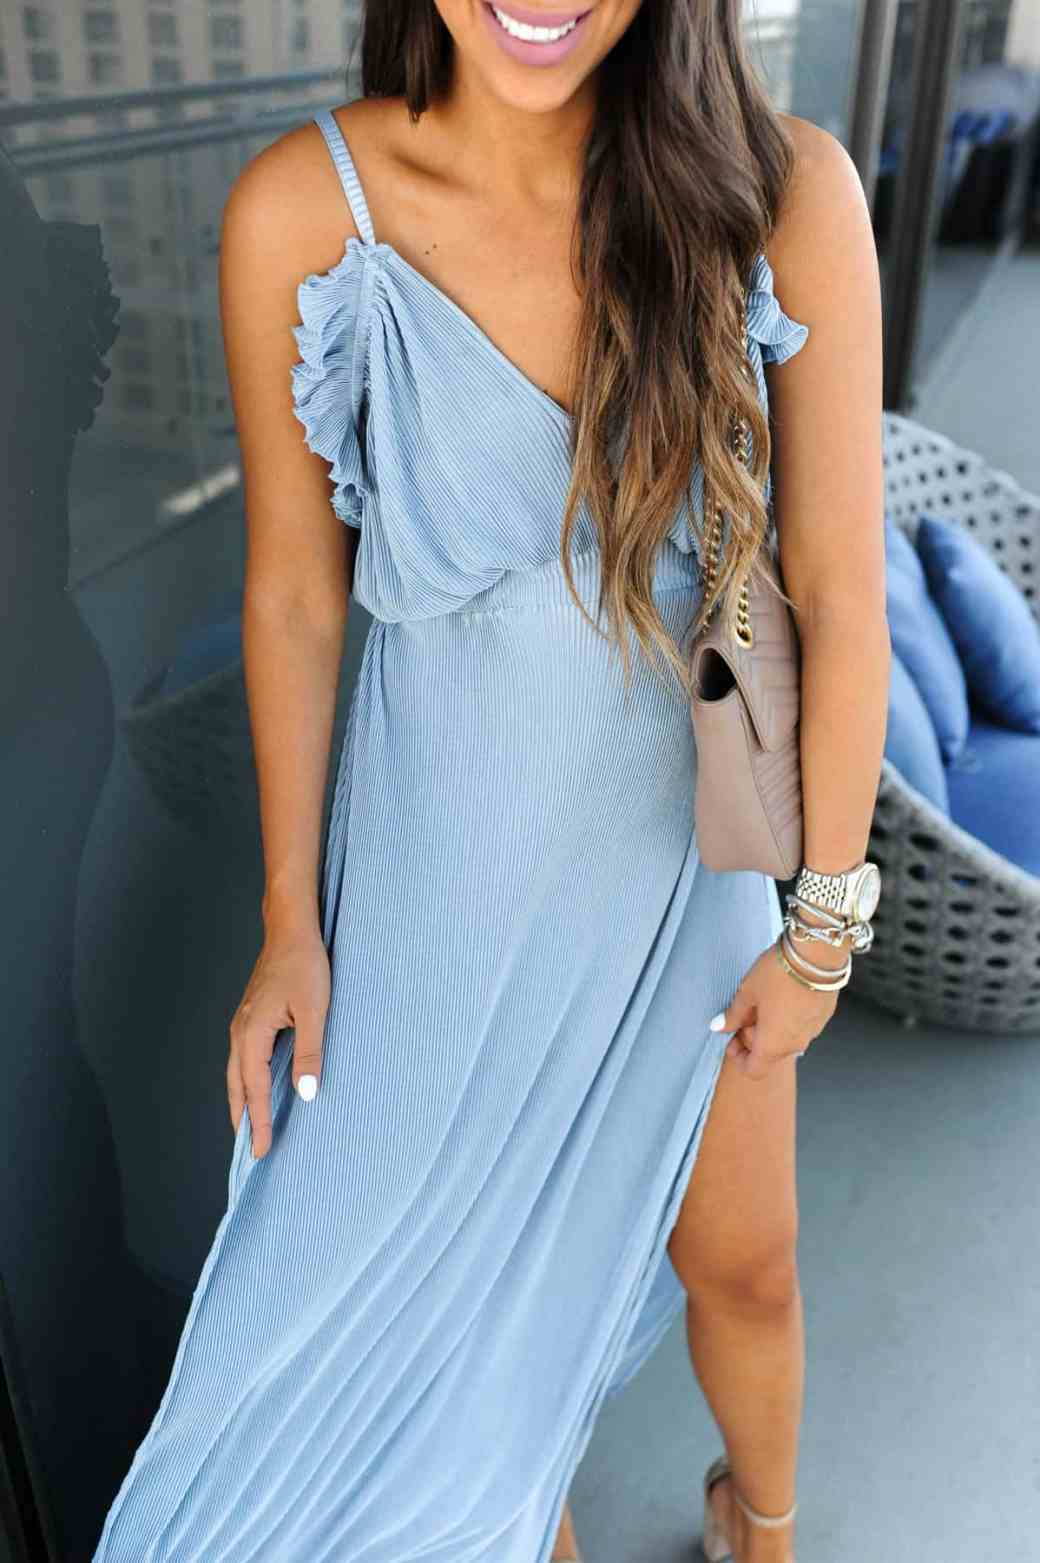 dress up buttercup 7 of 8 - Pleated Blue Maxi